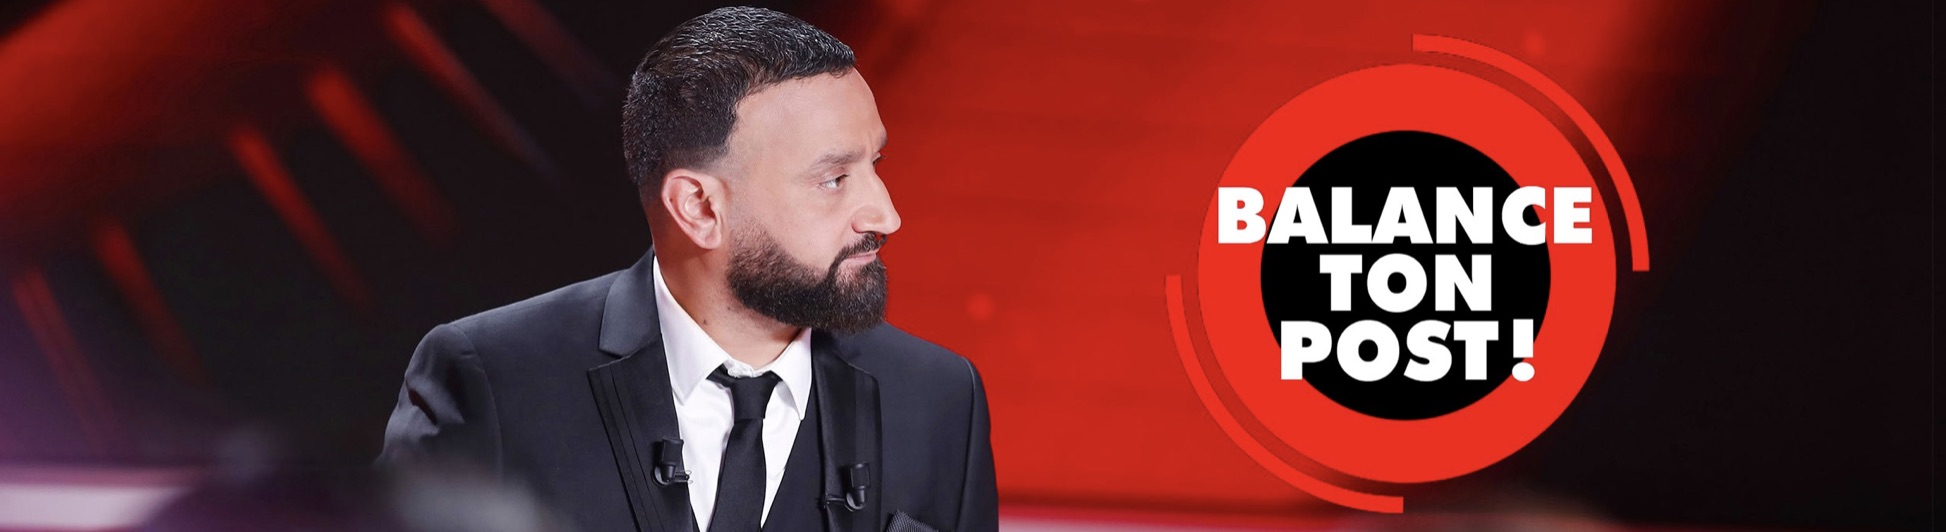 Balance ton post - C8 - Cyril Hanouna -